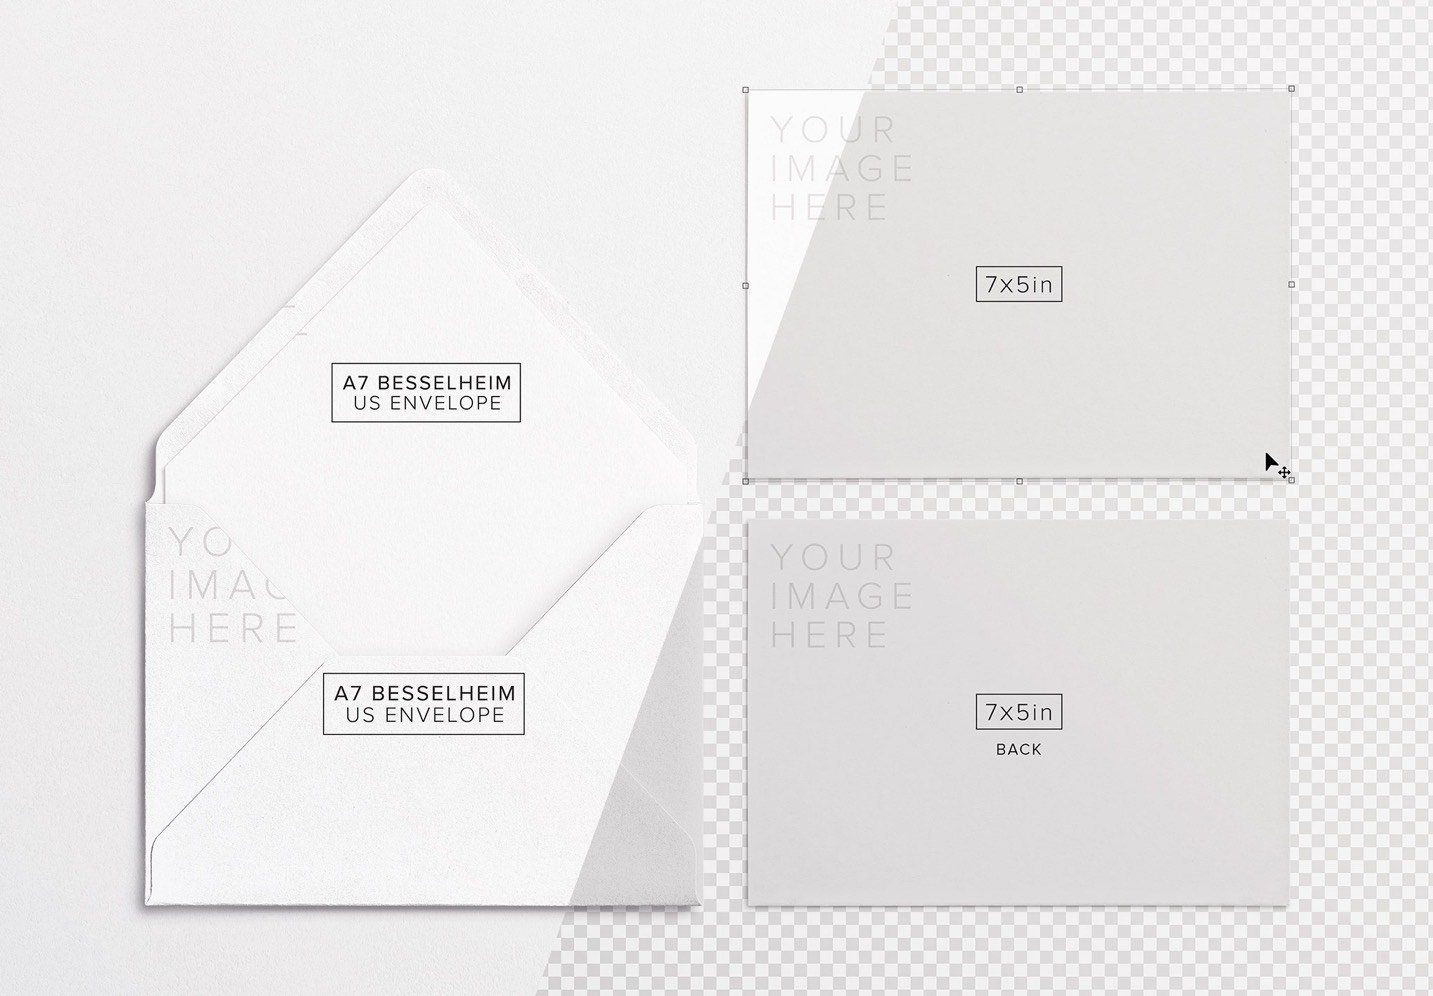 5x7in card front and back w envelope mockup image01